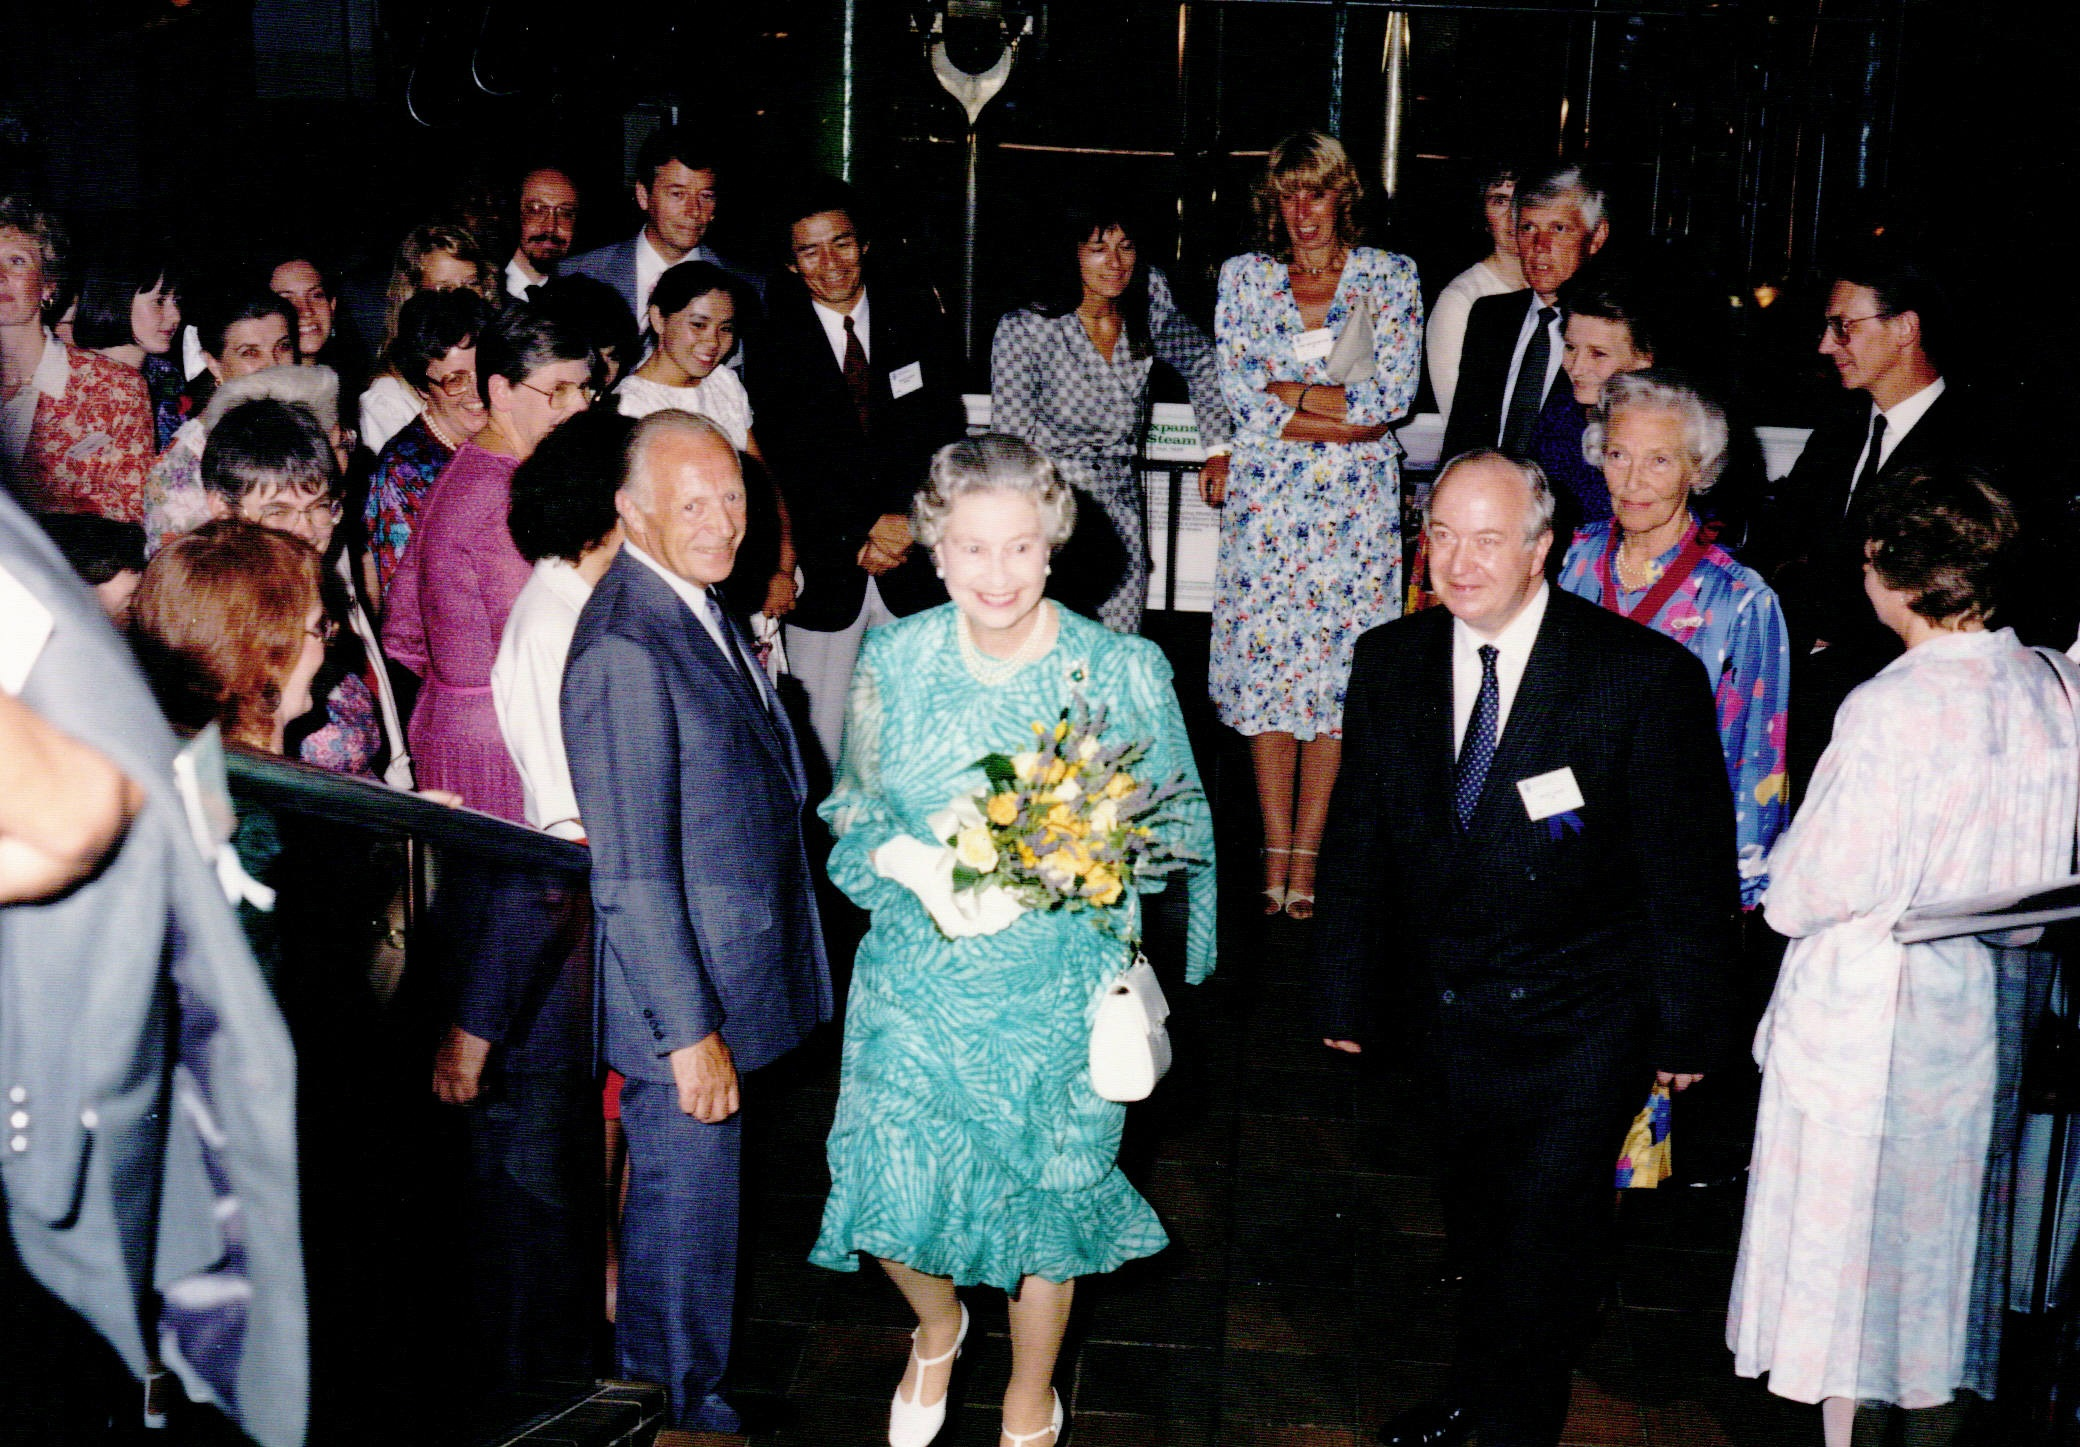 Queen Elizabeth II attends opening ceremony in London